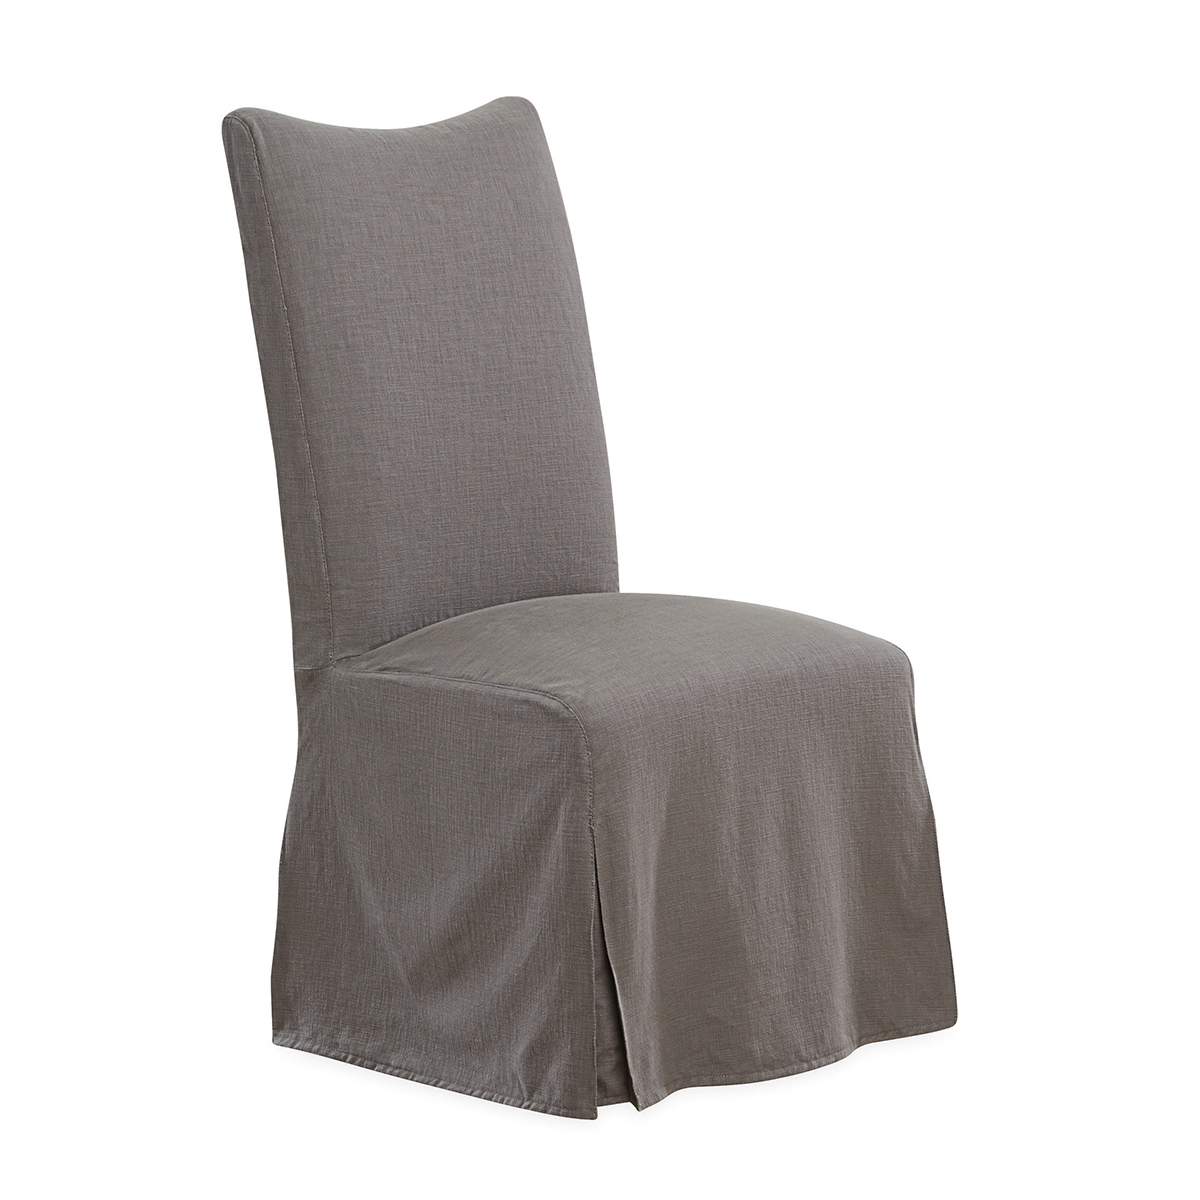 Slipcovered_Dining_Side_Chair_C7750-01_Lee_Industries_2.jpg